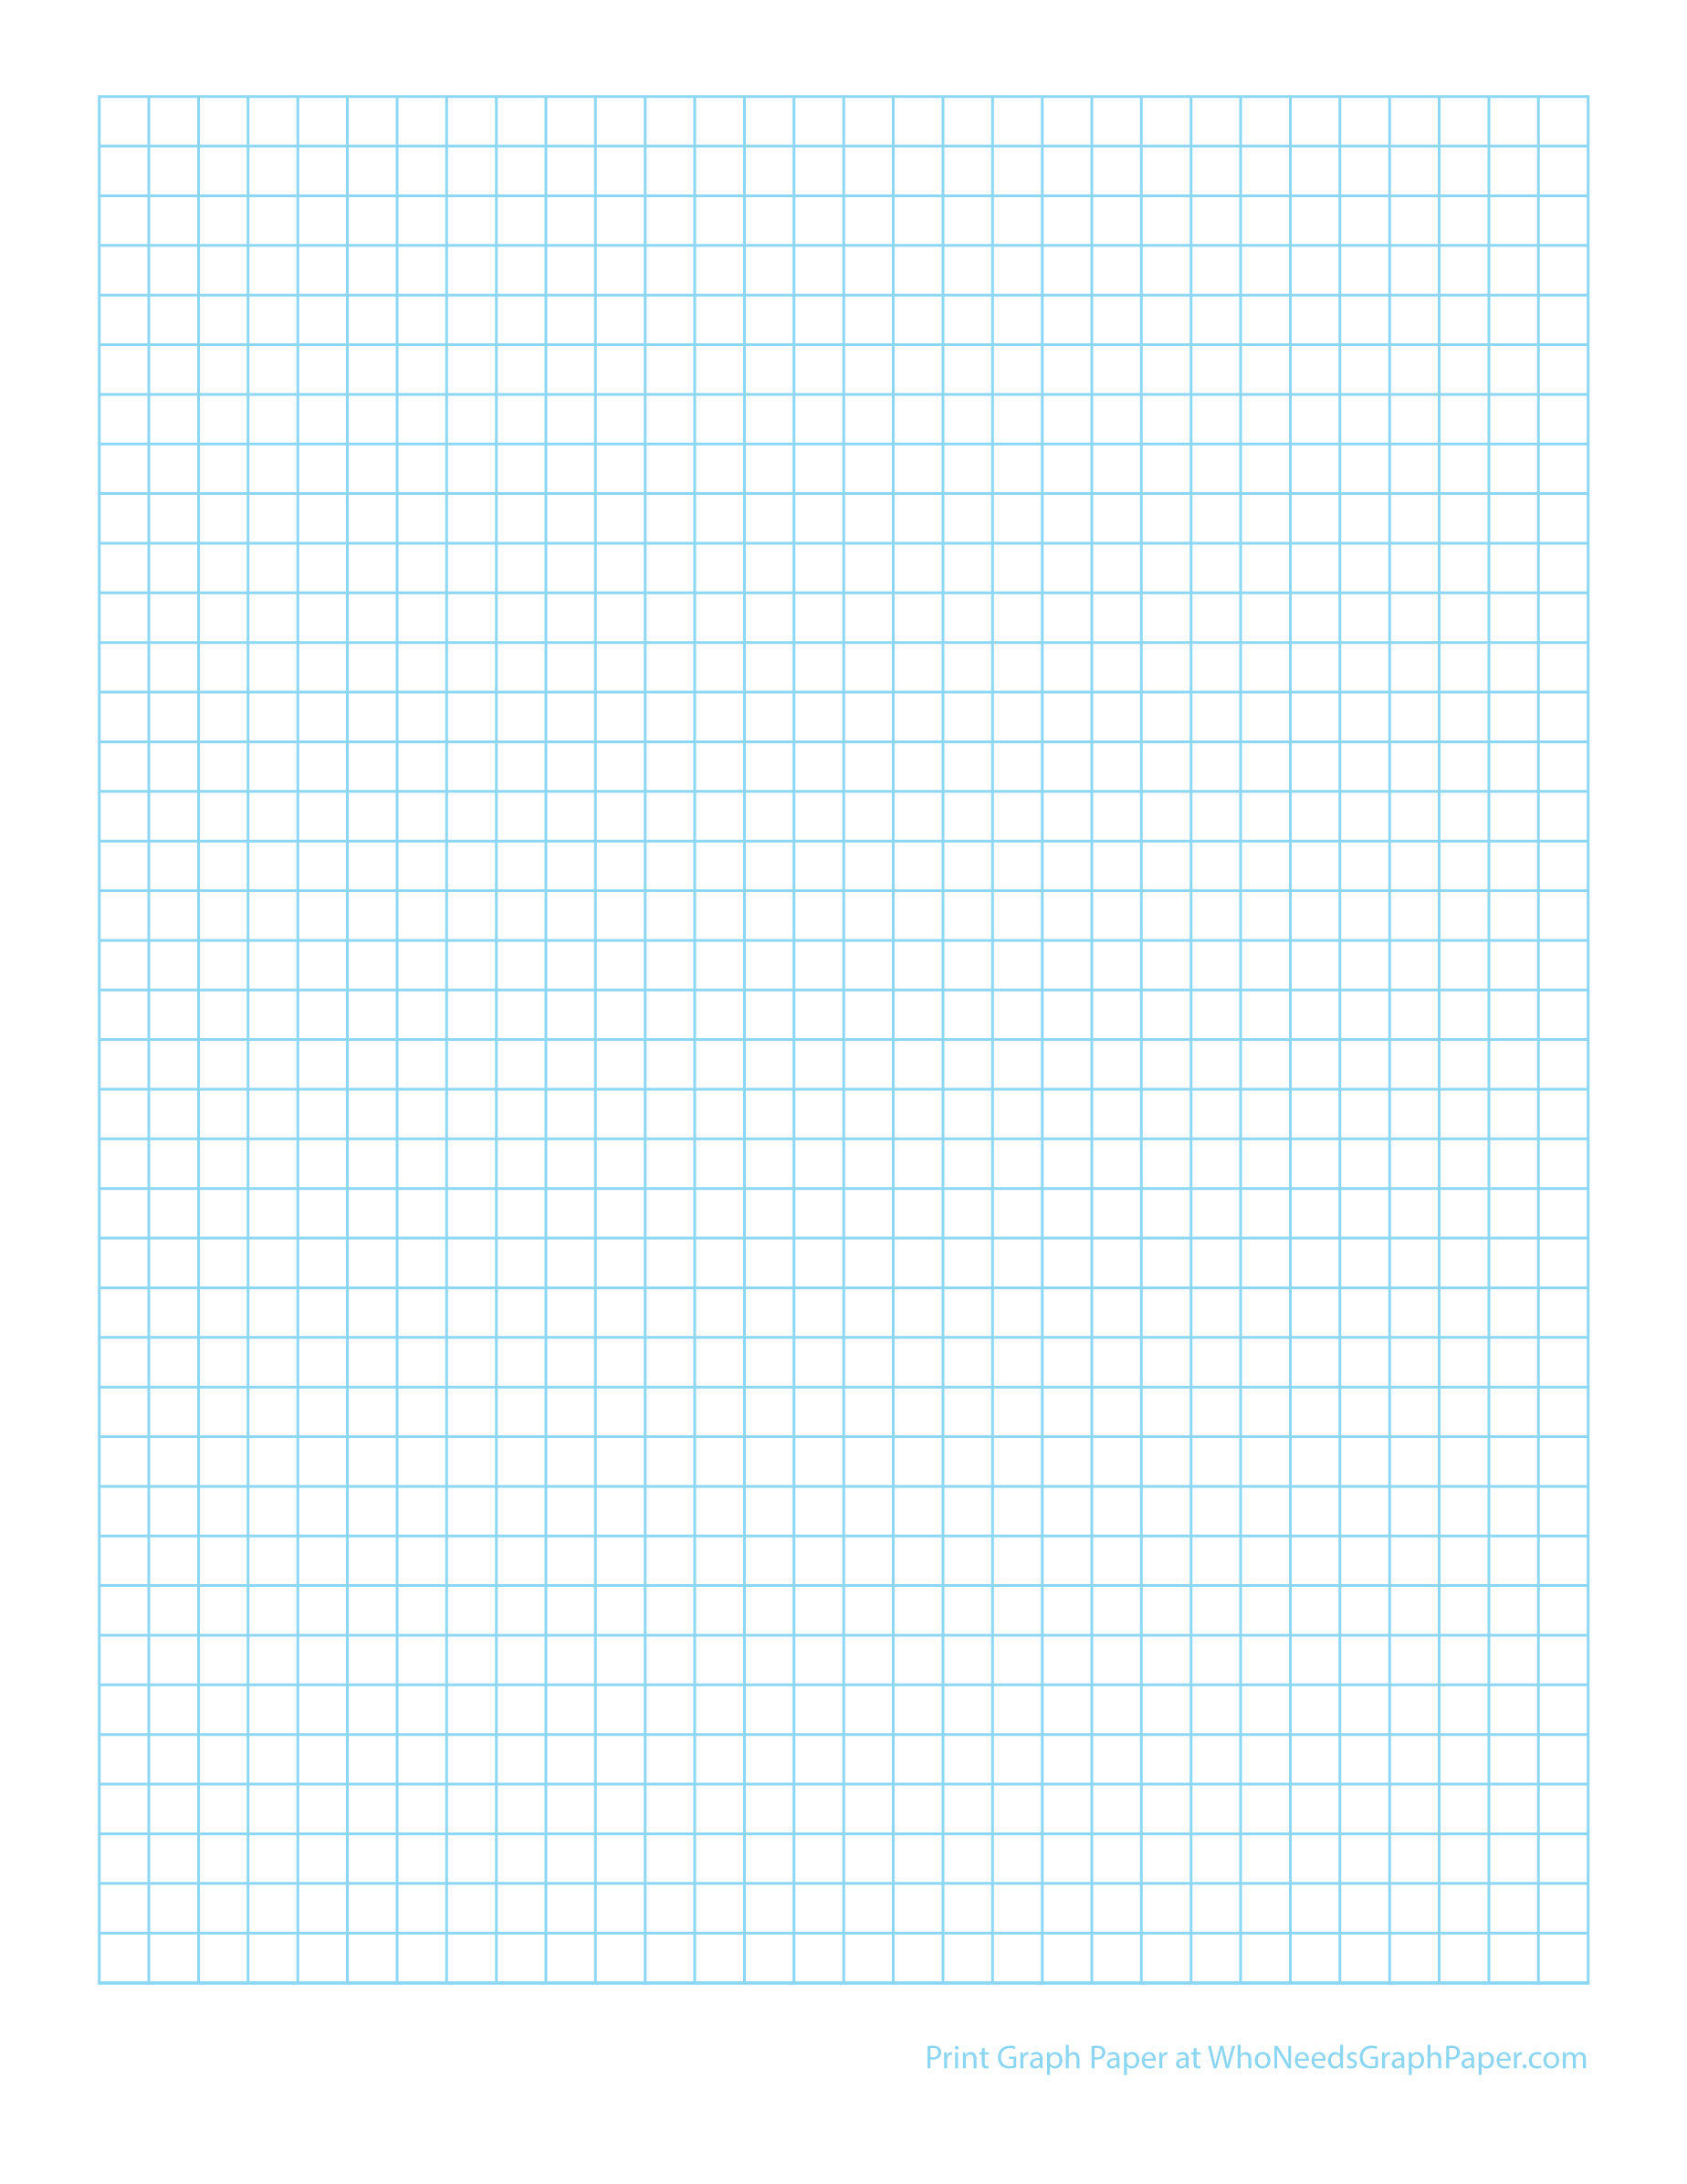 1 cm graph paper template word images professional for 1 cm graph paper template word